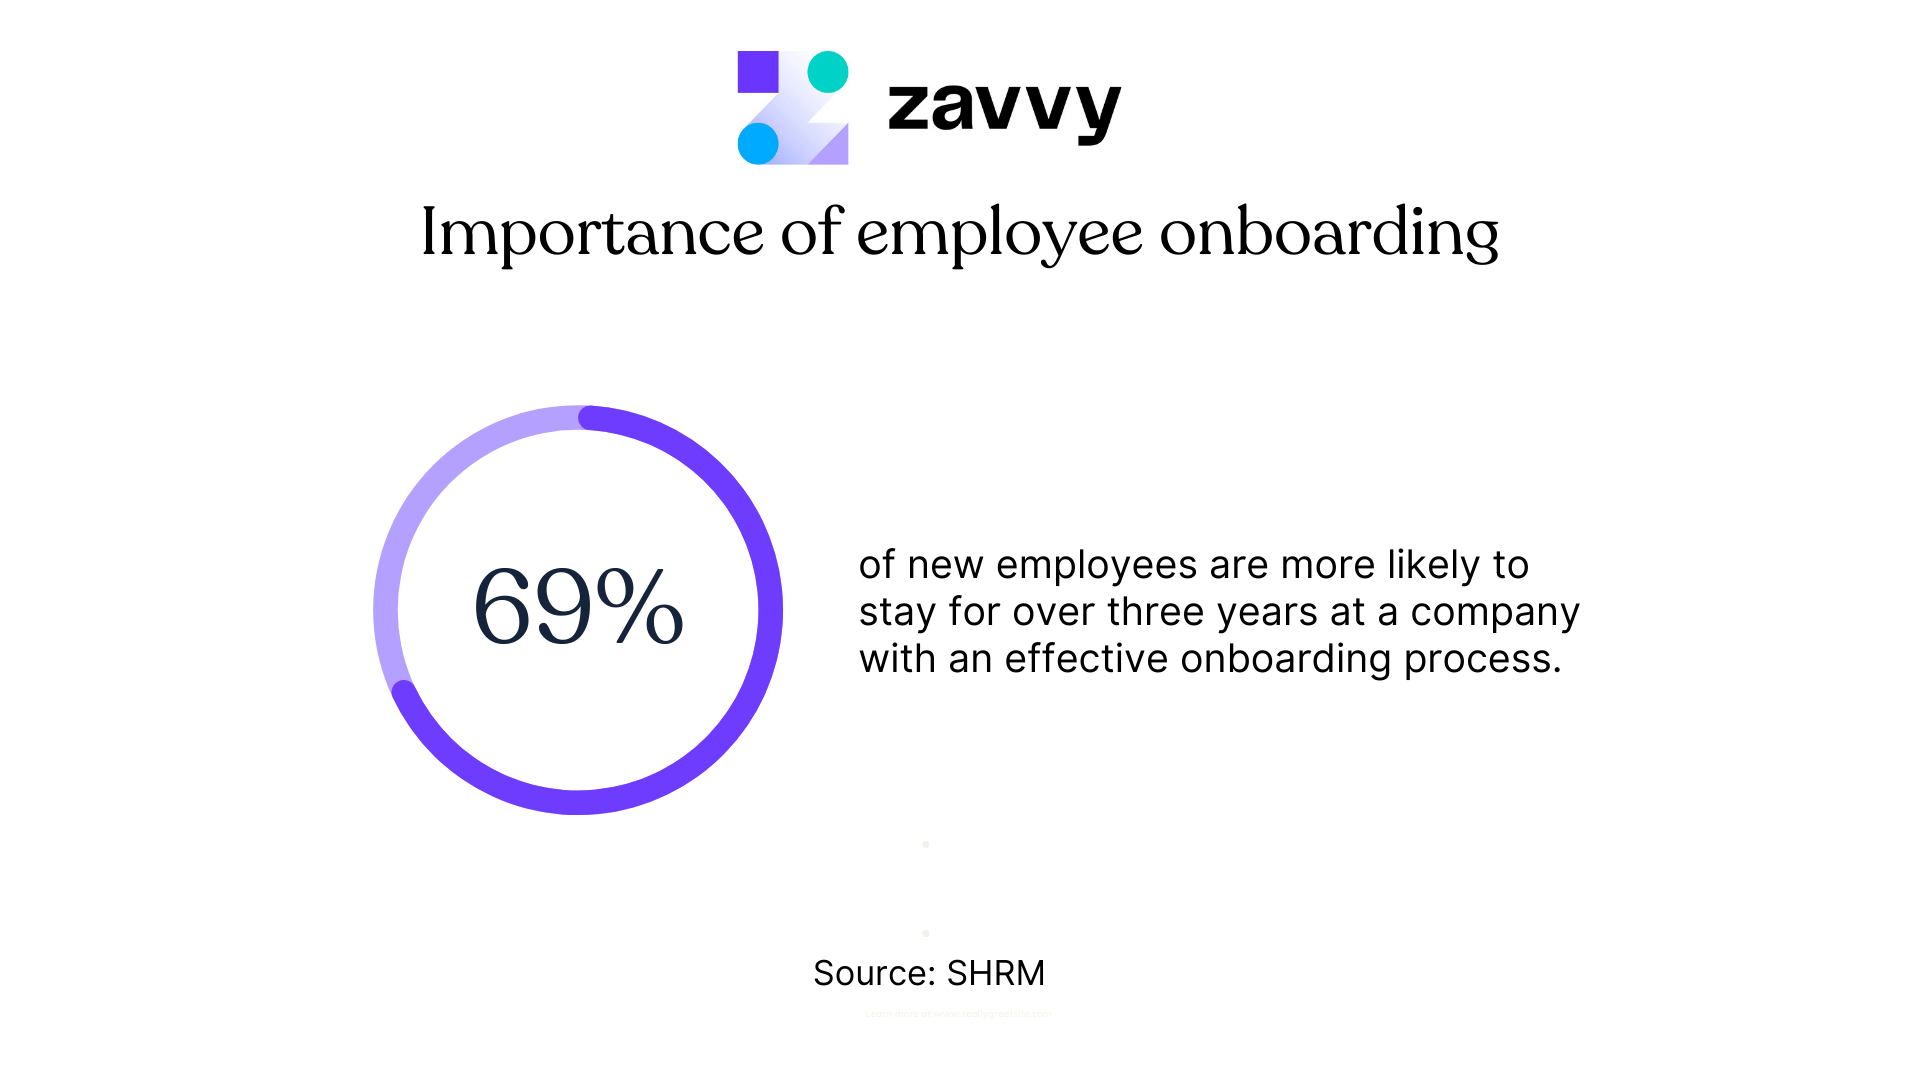 Importance of remote employee onboarding: 69% of employees are more likely to stay.